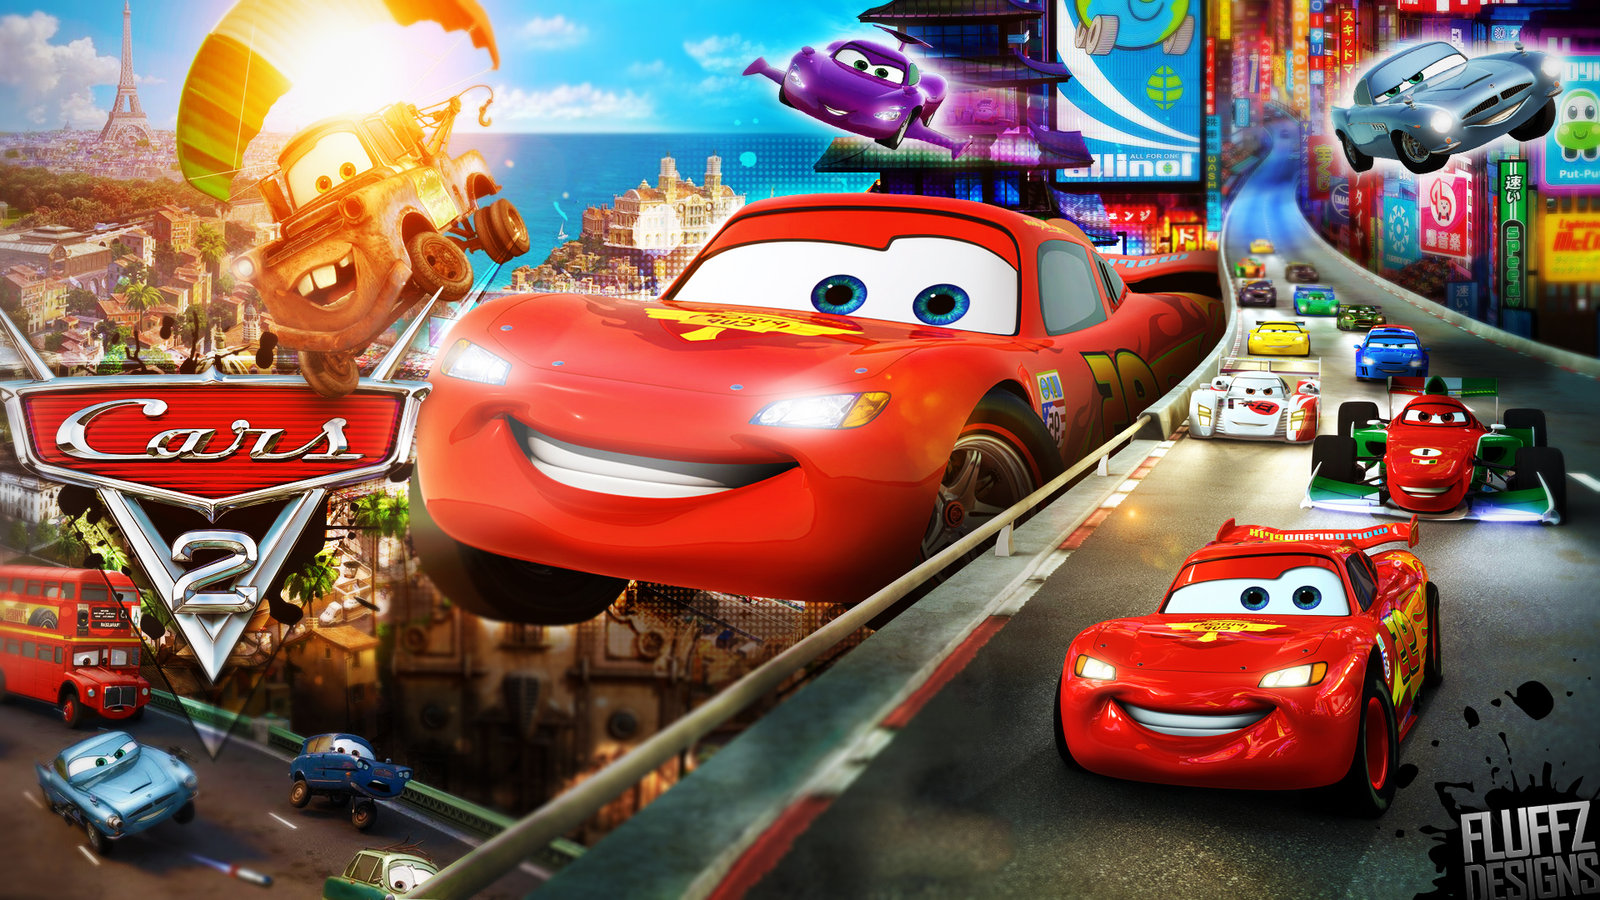 Image disney s cars 2 wallpaper by fluffydesignshd for Disney pixar cars mural wallpaper